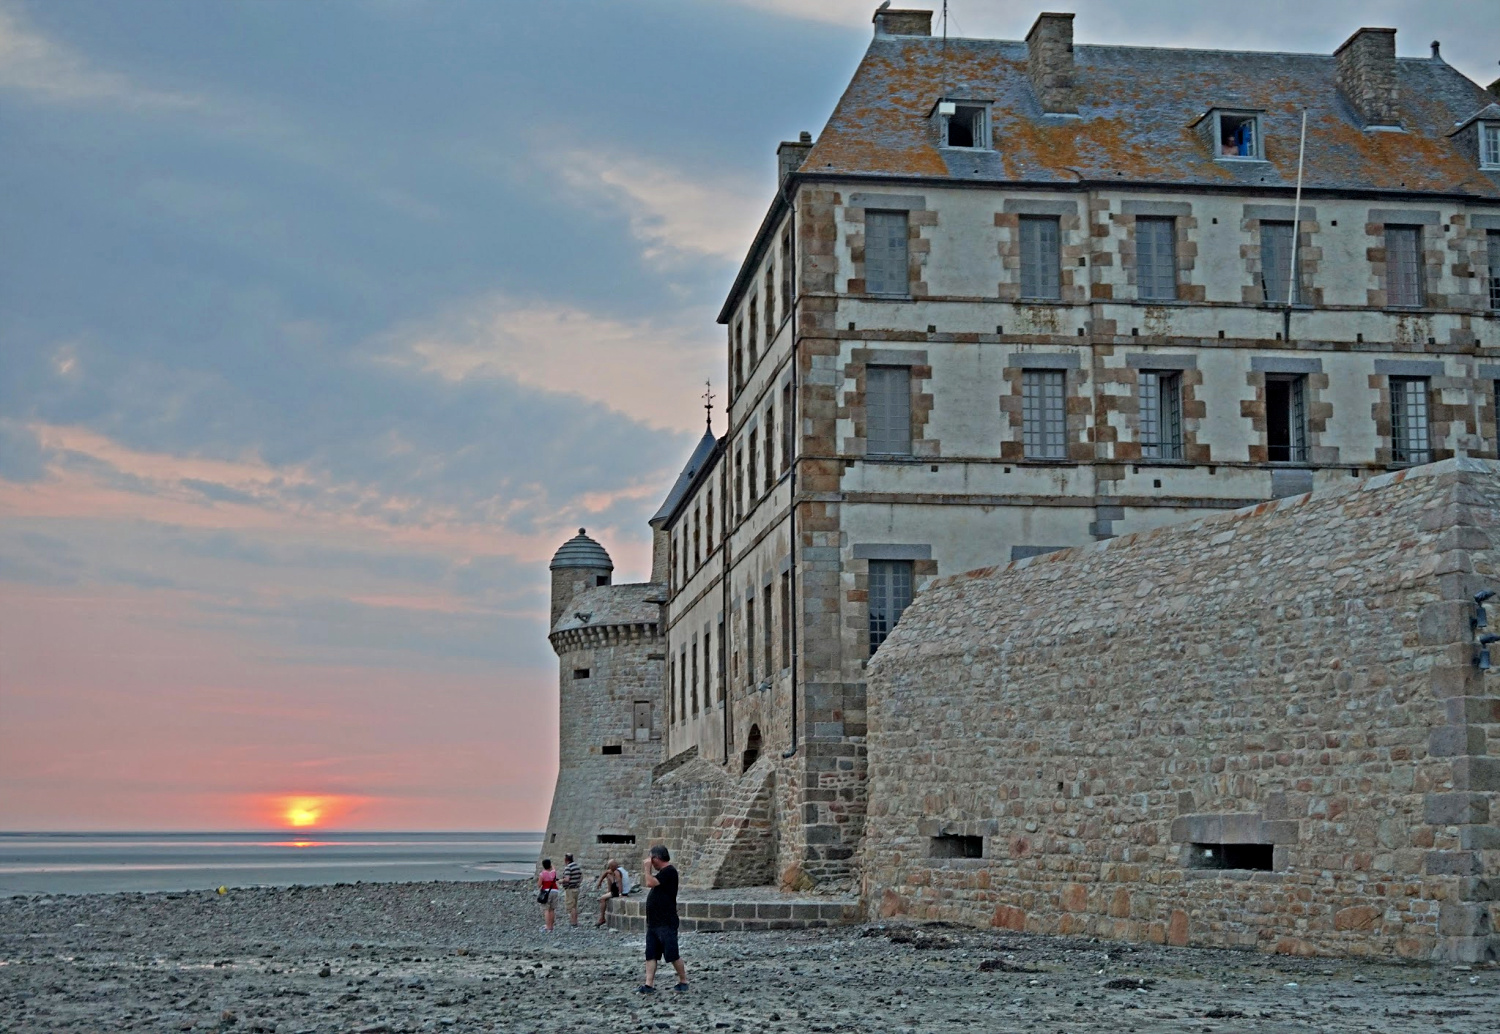 Sunset at the foot of Mont Saint Michel – photo by Yvonne Jasinski